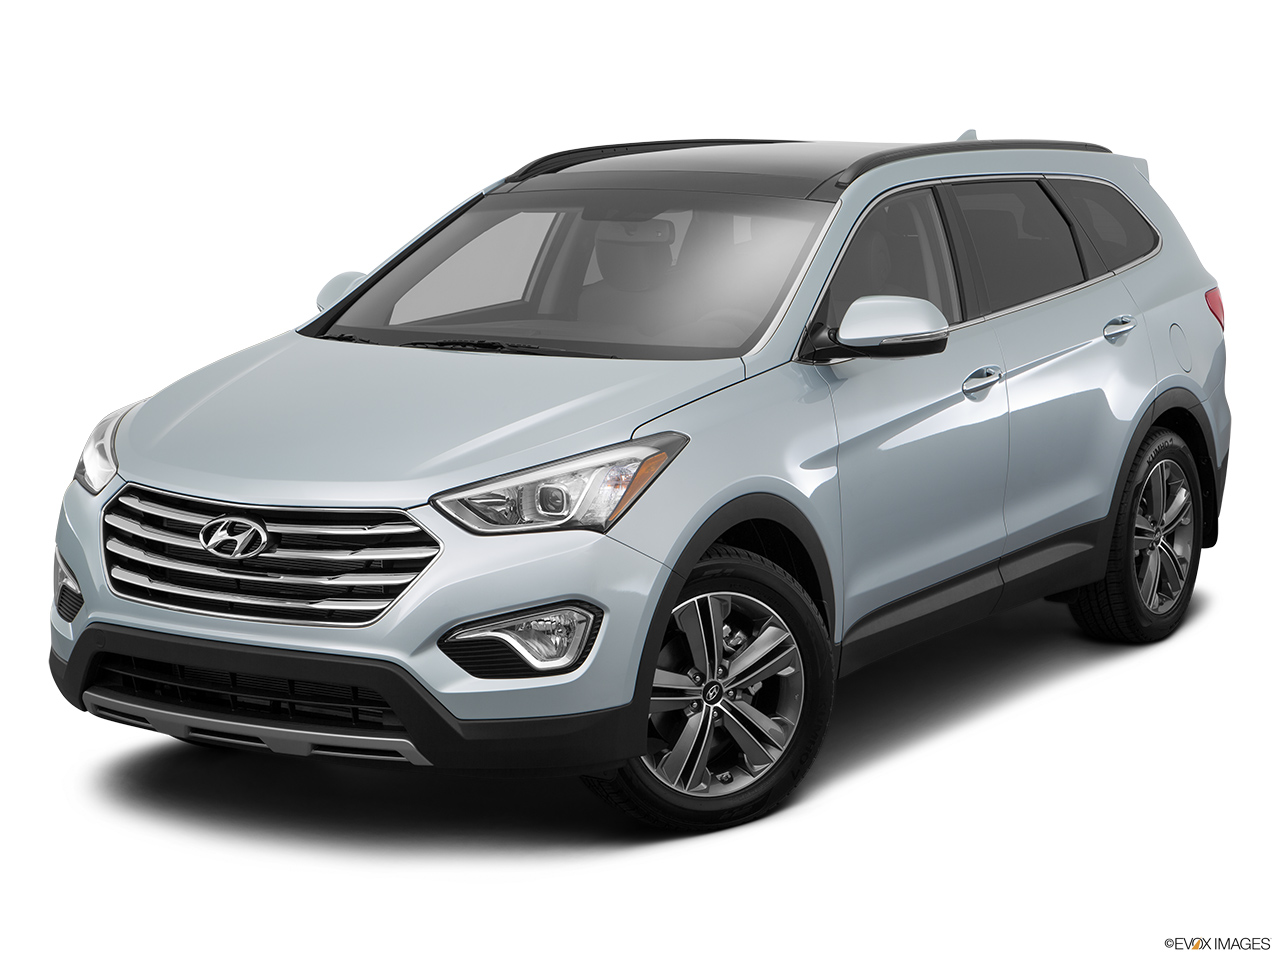 hyundai grand santa fe 2016 3 3l fwd in qatar new car prices specs reviews photos yallamotor. Black Bedroom Furniture Sets. Home Design Ideas